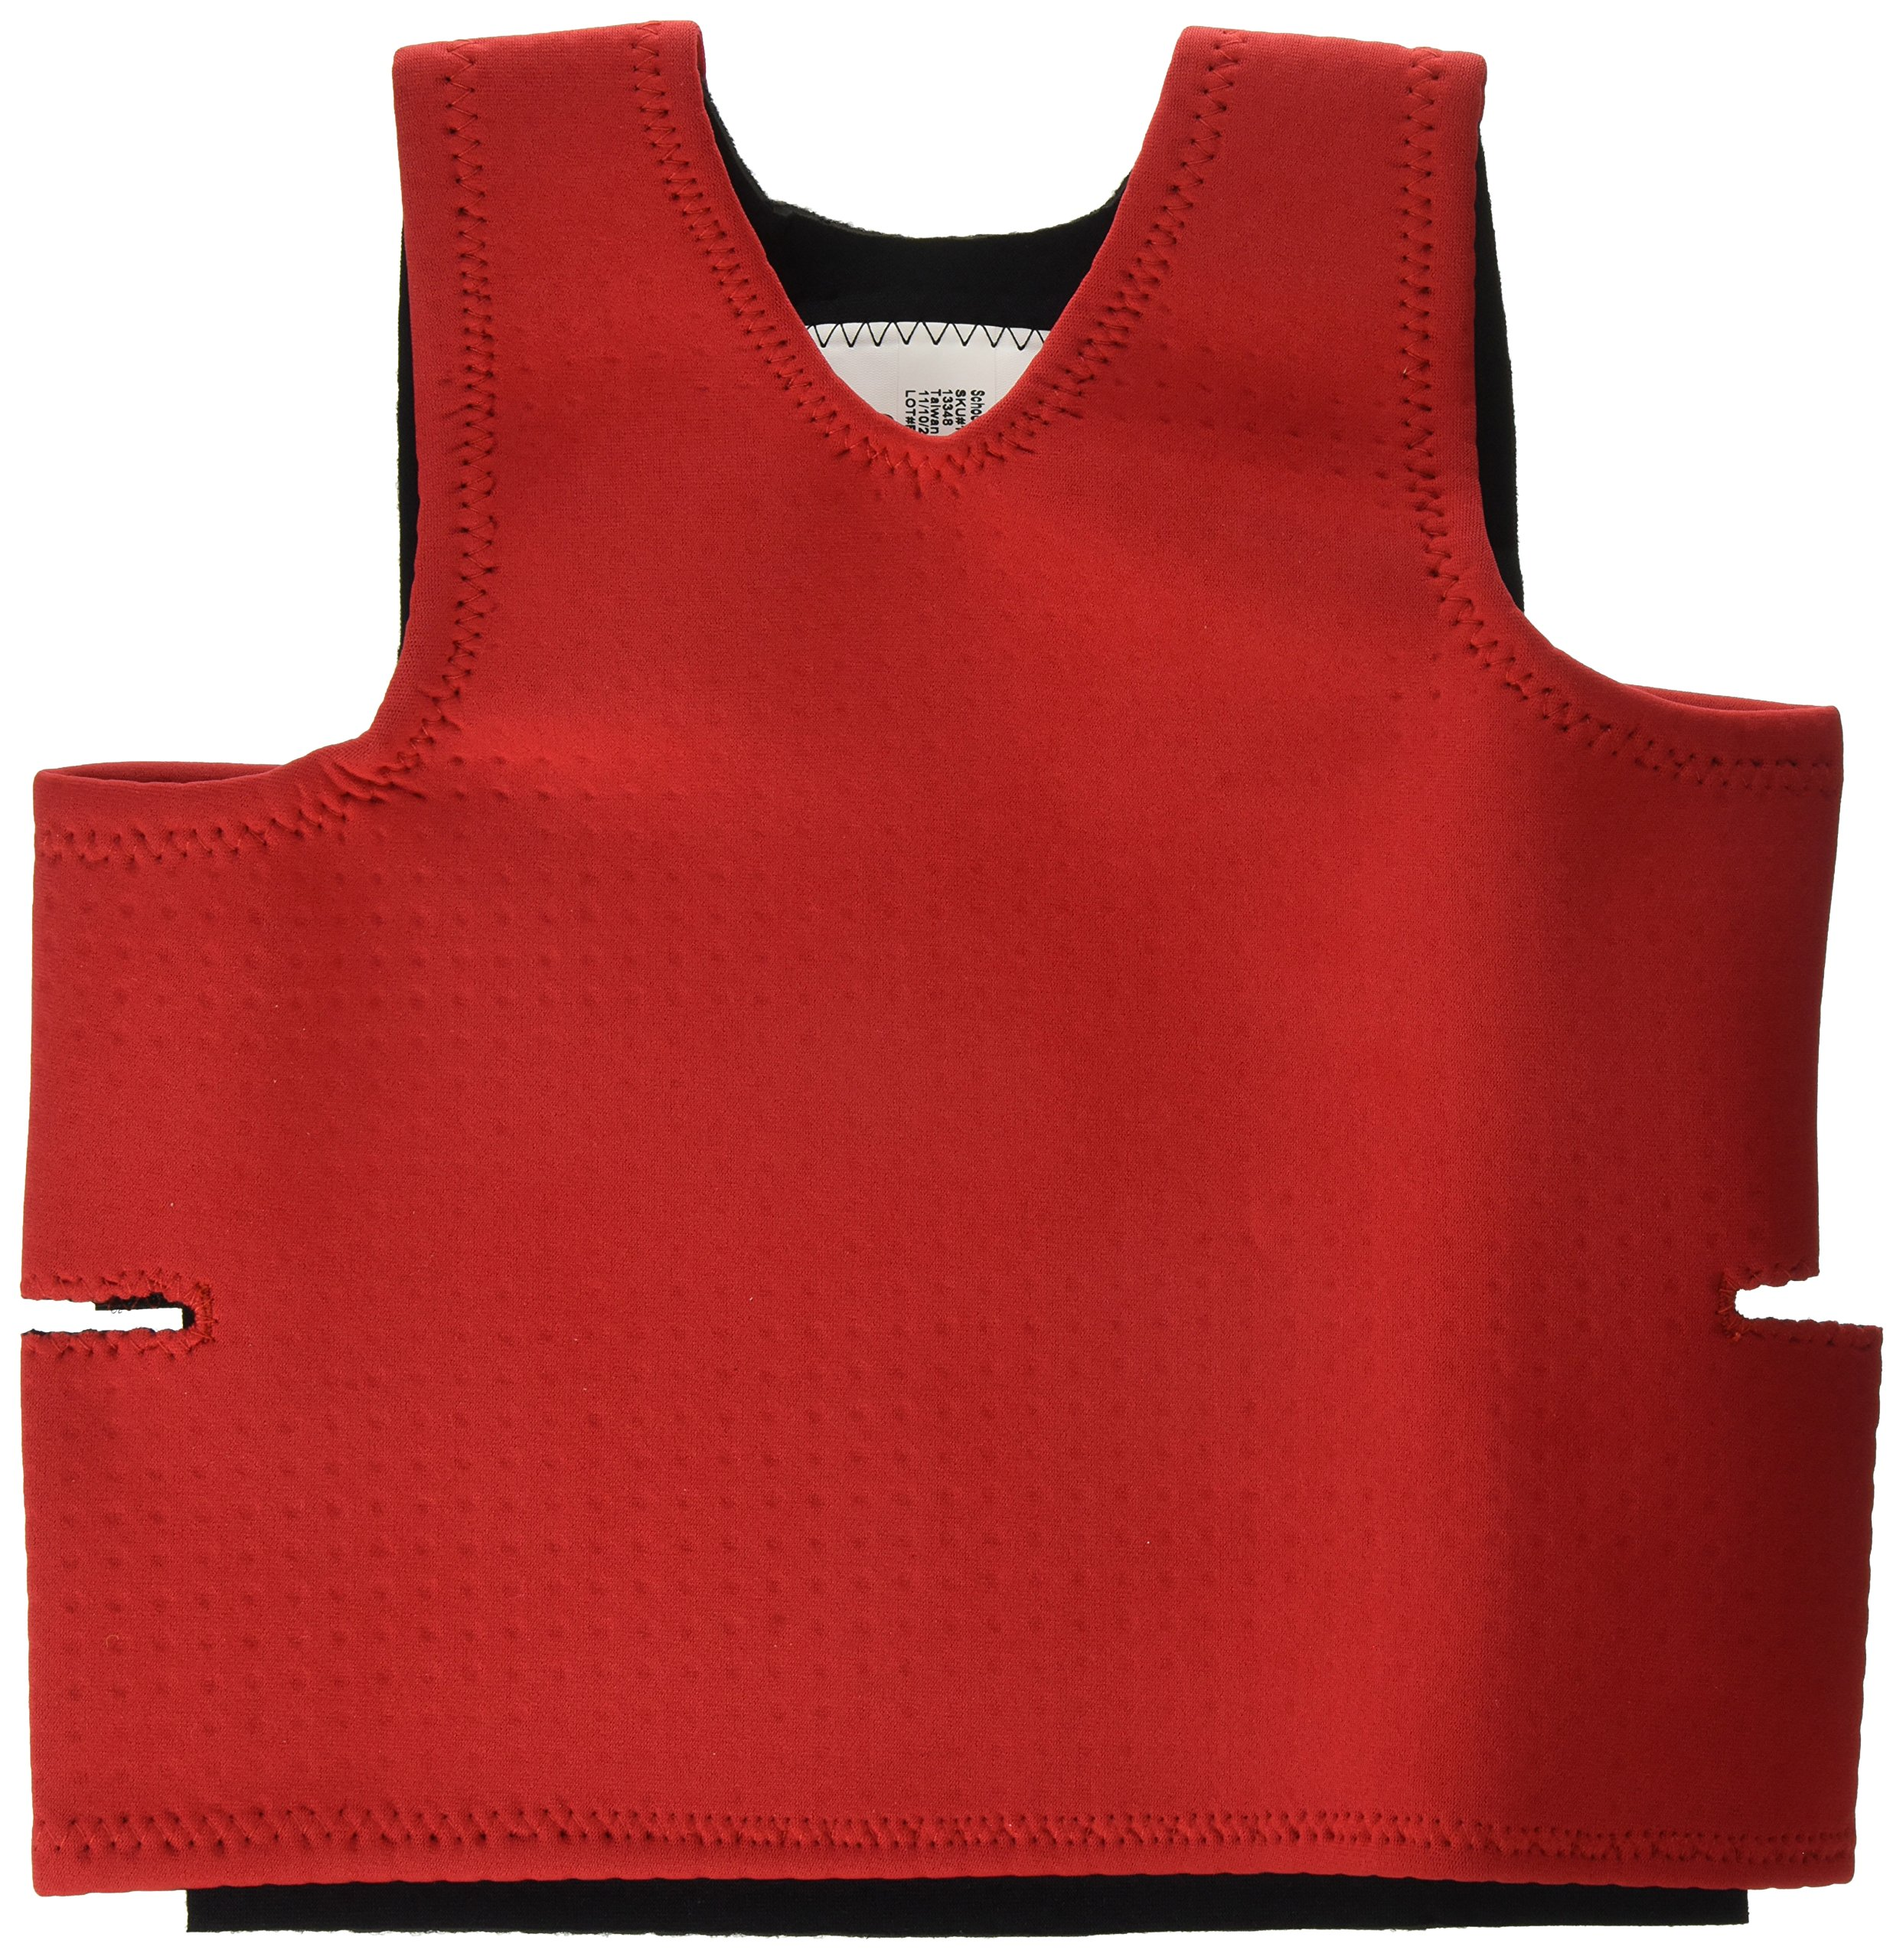 Abilitations Integrations Deep Pressure Sensory Vest, Extra Small, Red by Abilitations